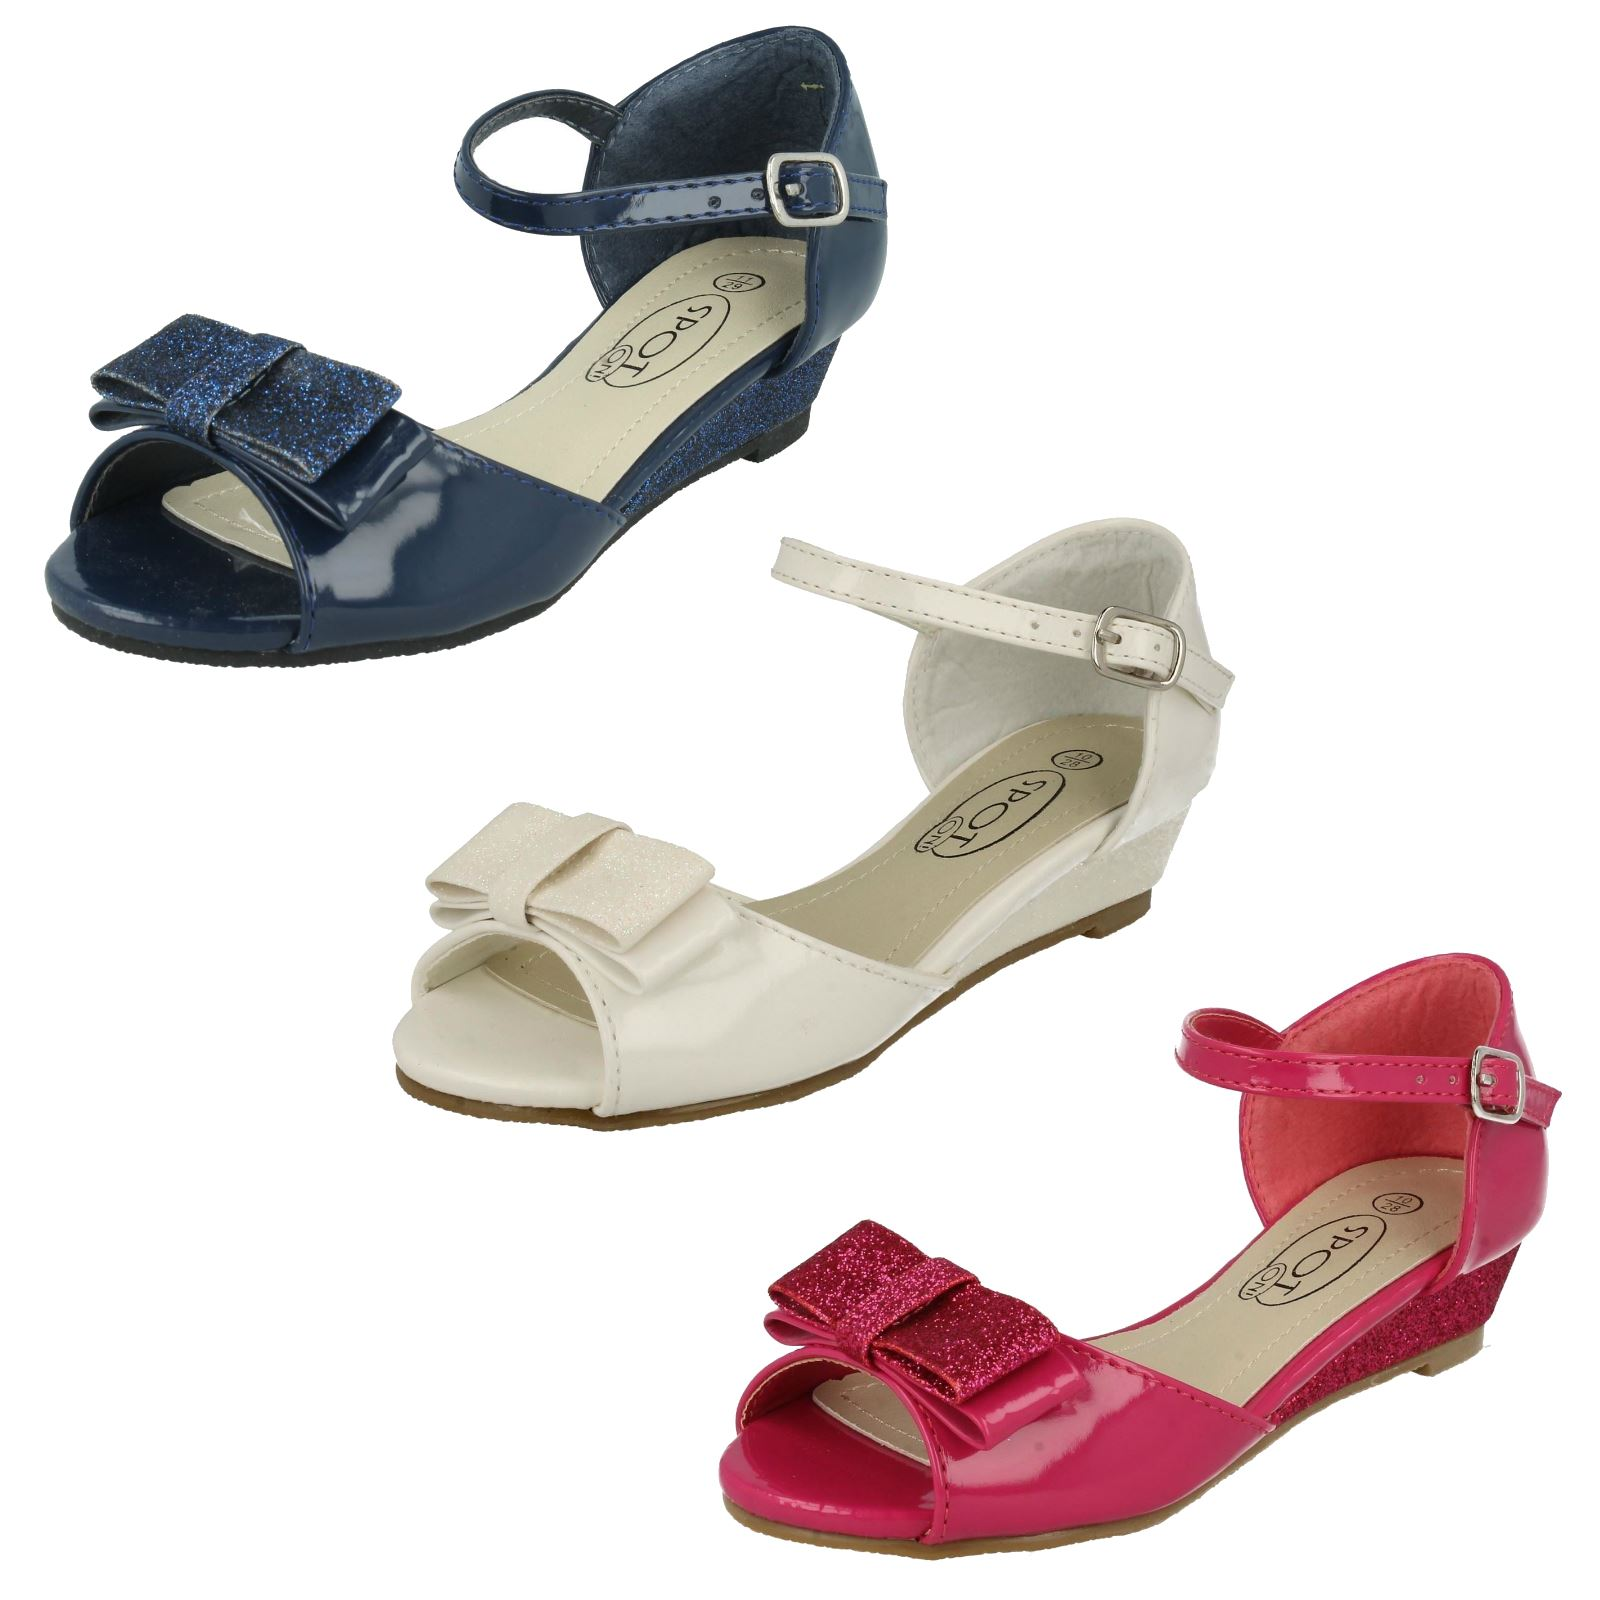 Details about  /GIRLS SPOT ON H0R317 OPEN TOE TWIN BUCKLE SLIP ON MULES GLITTER SUMMER SANDALS